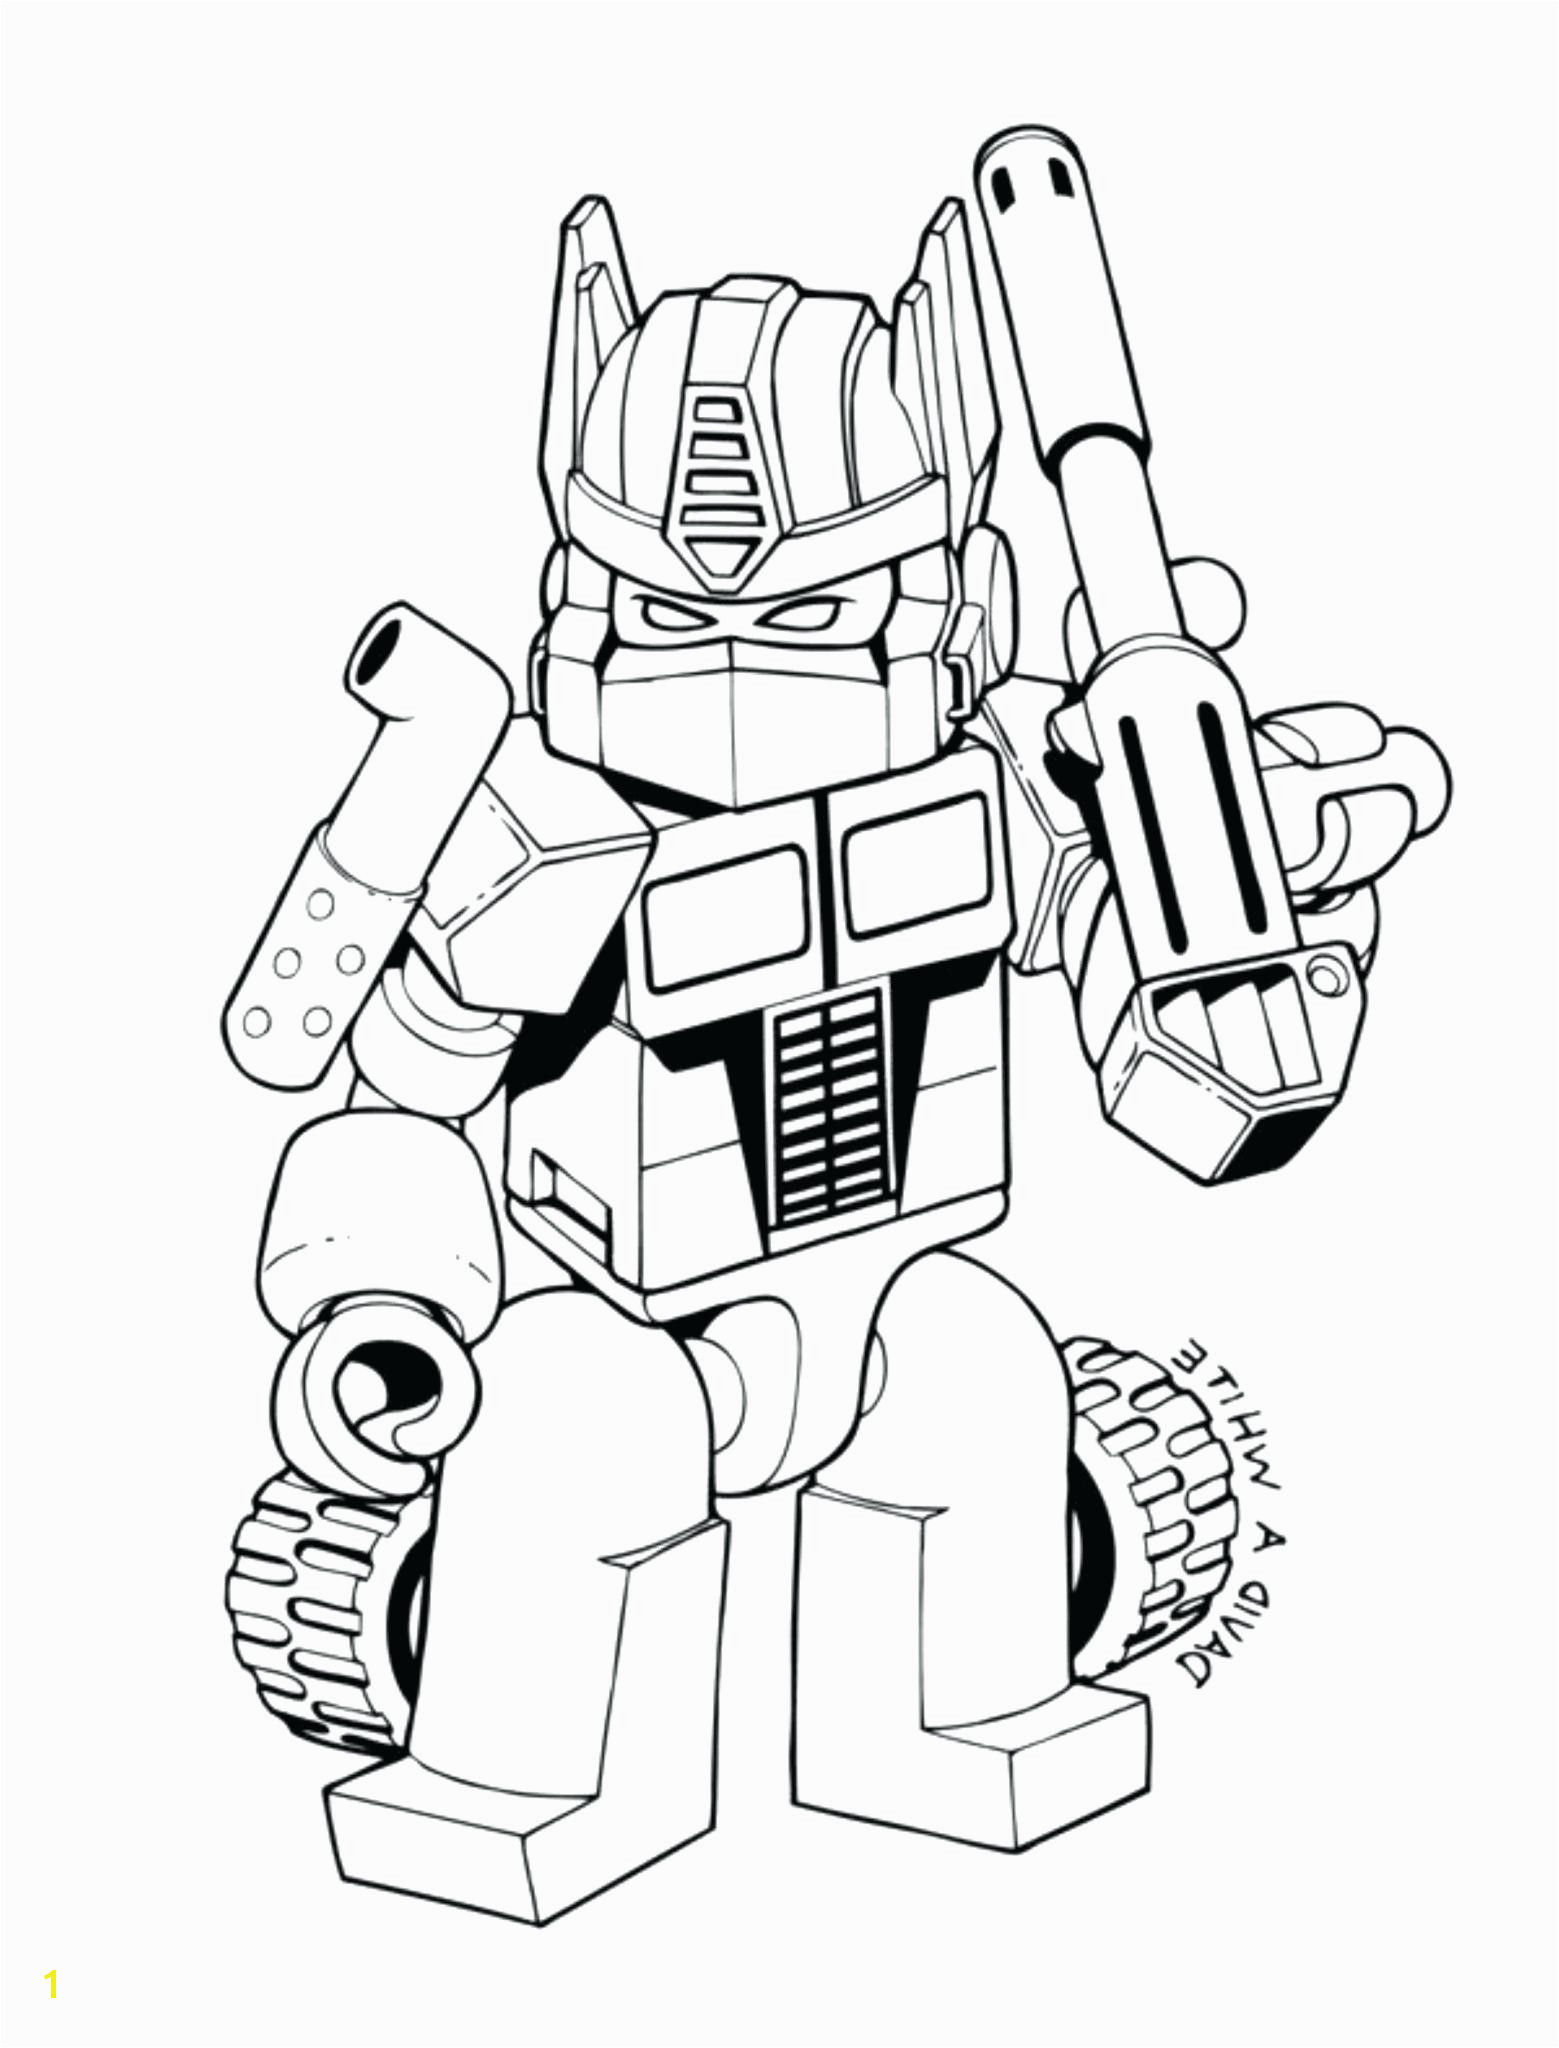 Transformer Coloring Pages Transformers Coloring Pages to Print for Free Reference Transformers Coloring Pages to